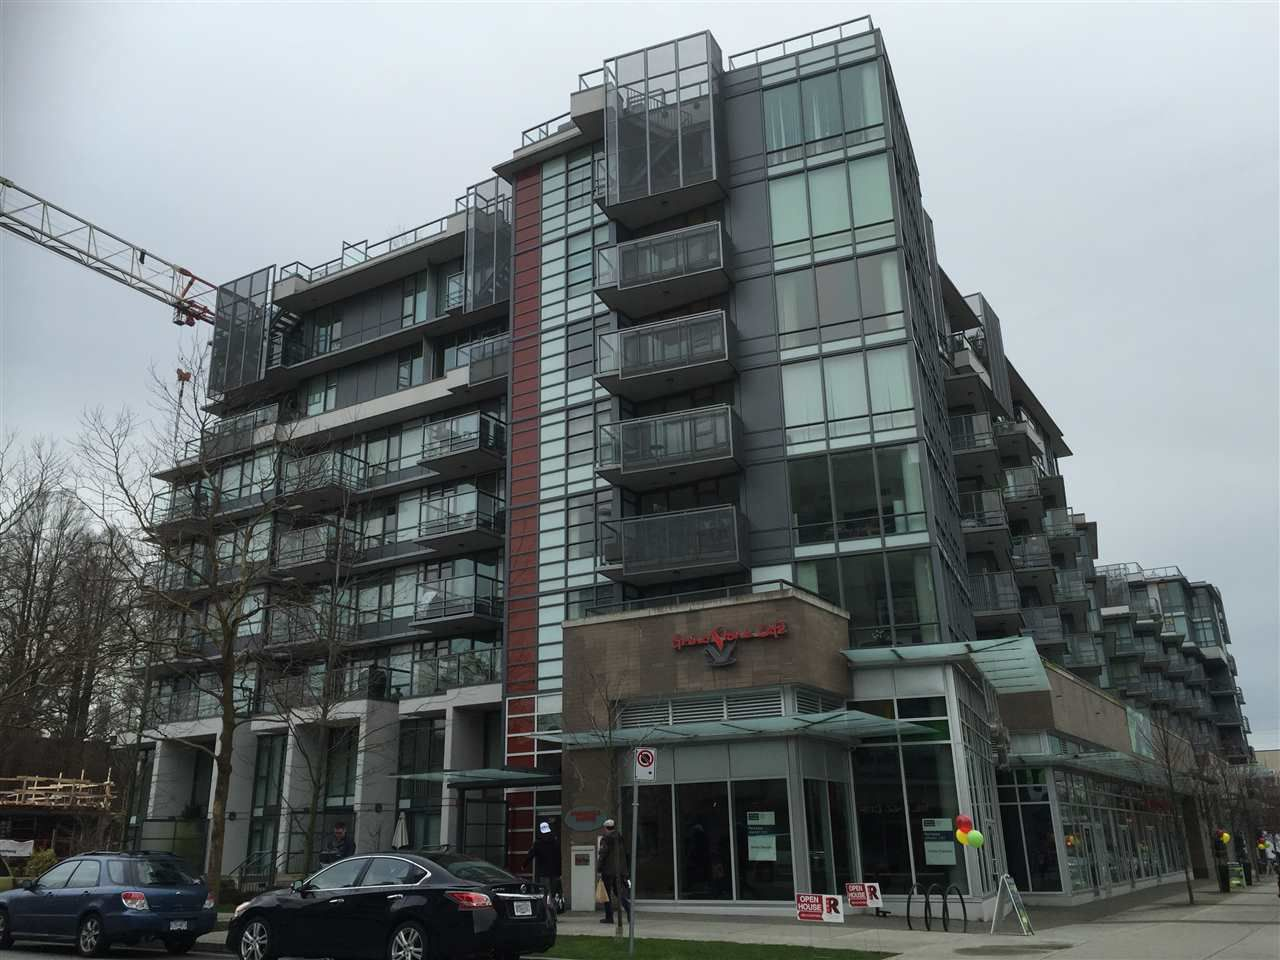 """Main Photo: 803 2507 MAPLE Street in Vancouver: Kitsilano Condo for sale in """"PINNACLE LIVING ON BROADWAY"""" (Vancouver West)  : MLS®# R2032022"""